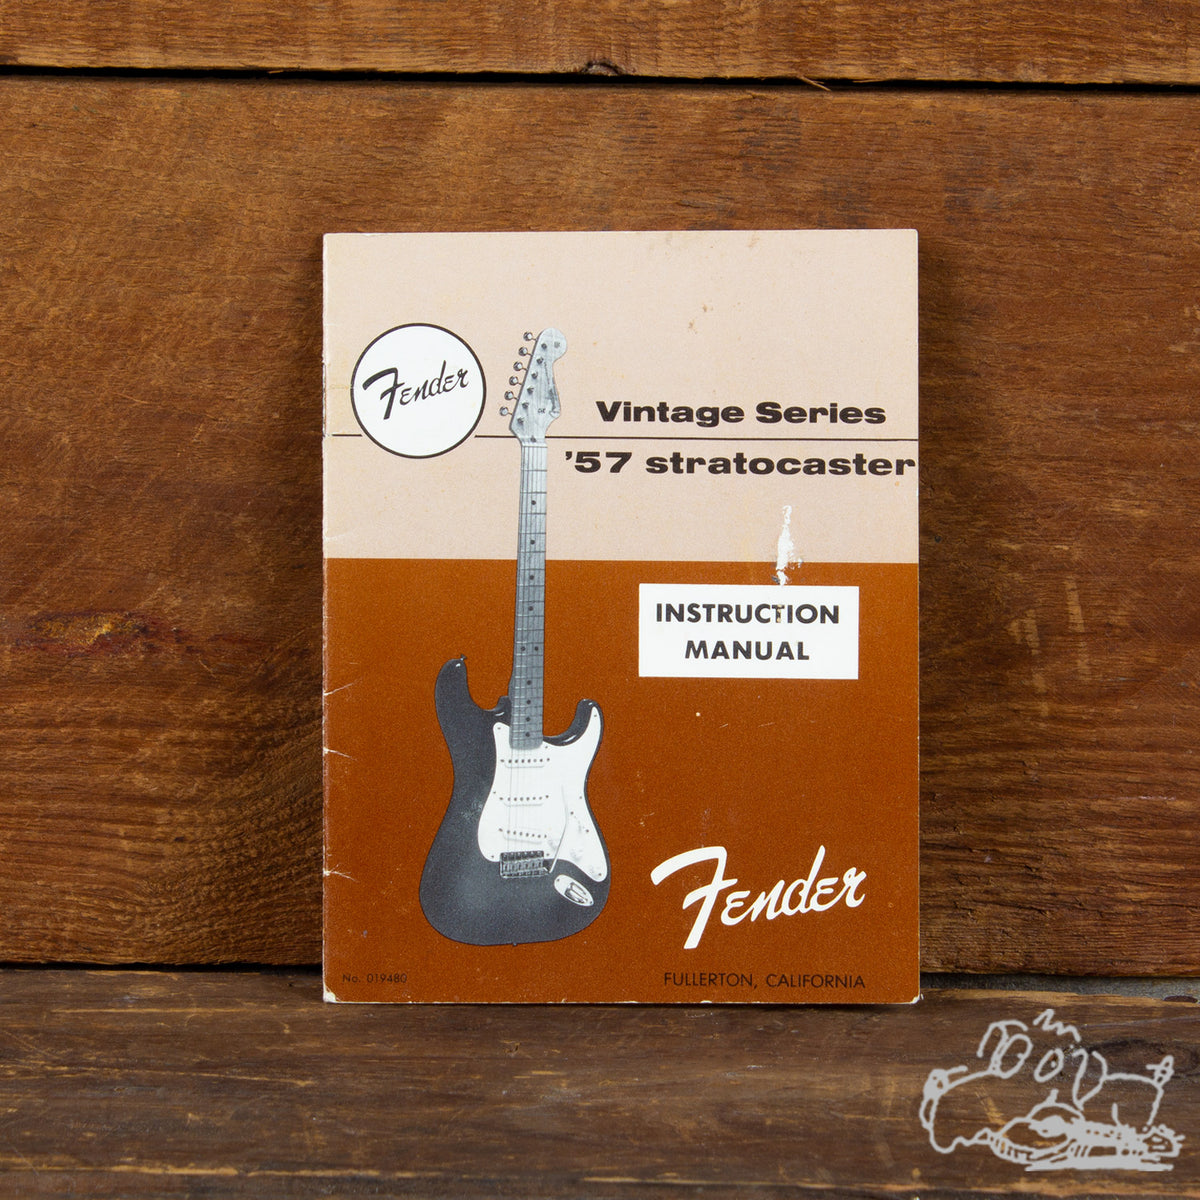 1982 Fender Vintage Series '57 Stratocaster Instruction Manual